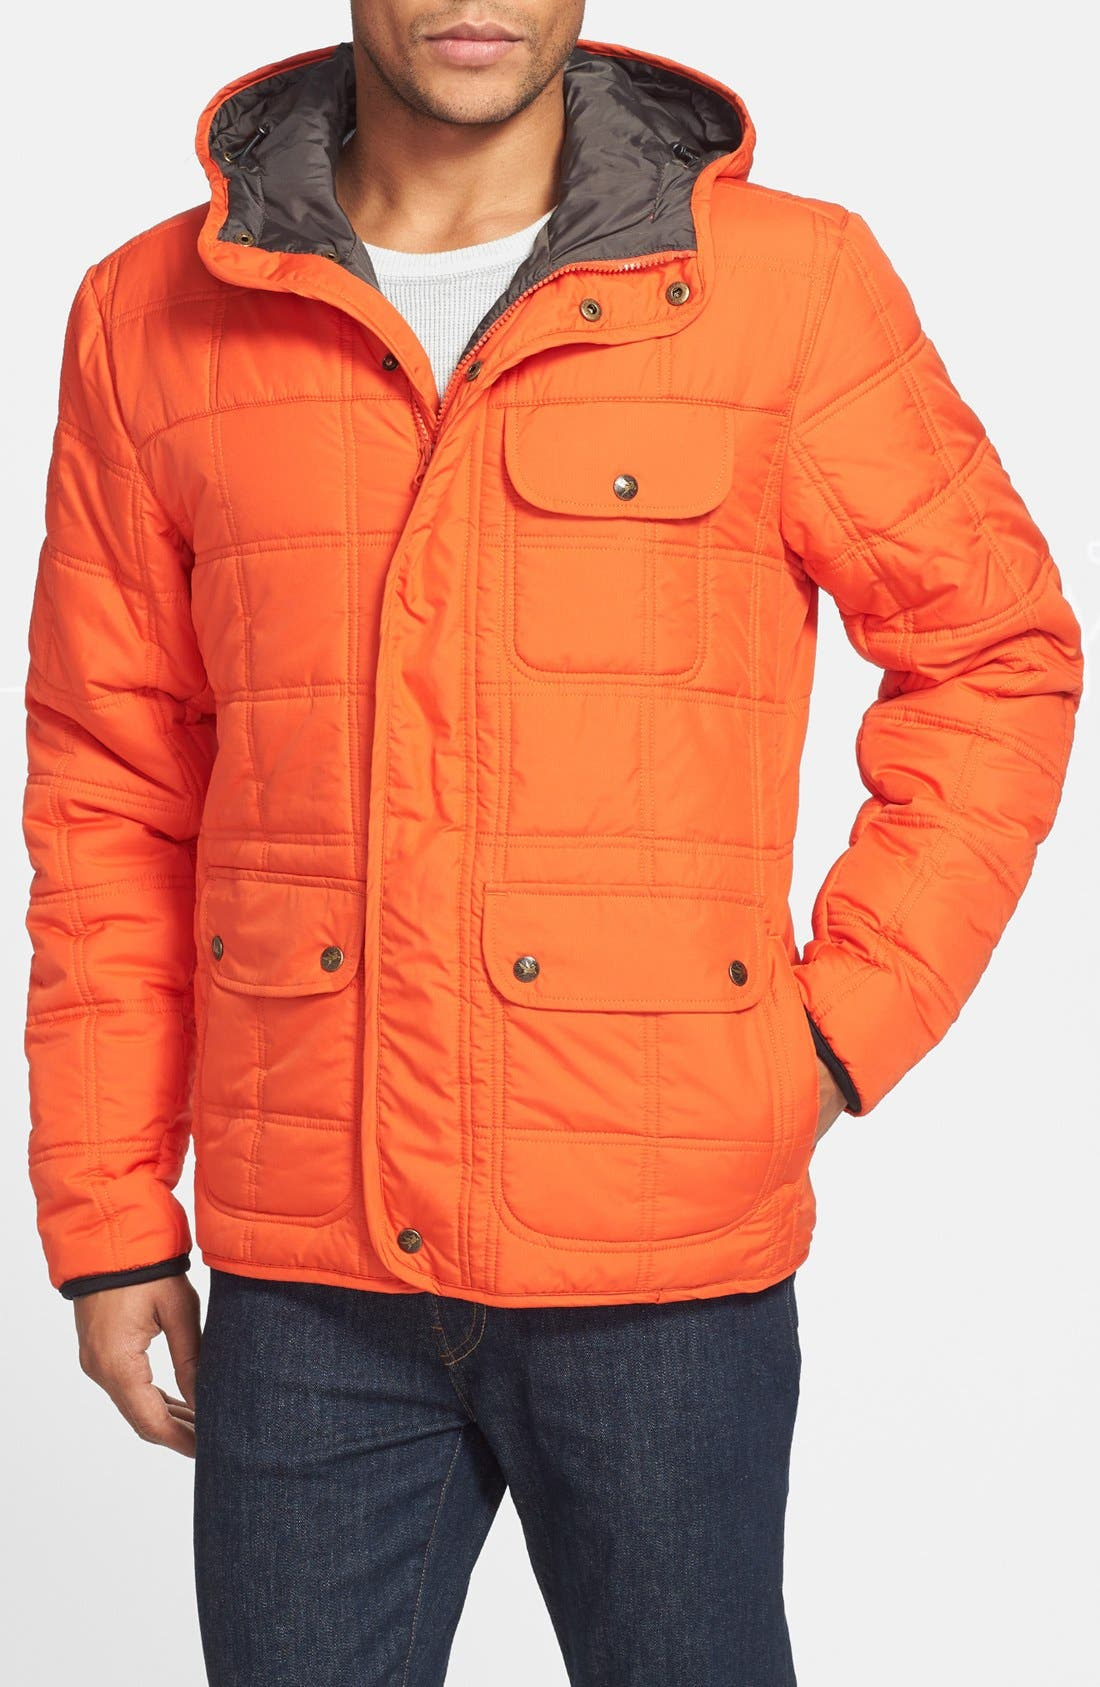 Alternate Image 1 Selected - Spiewak 'Block Island' Quilted Jacket